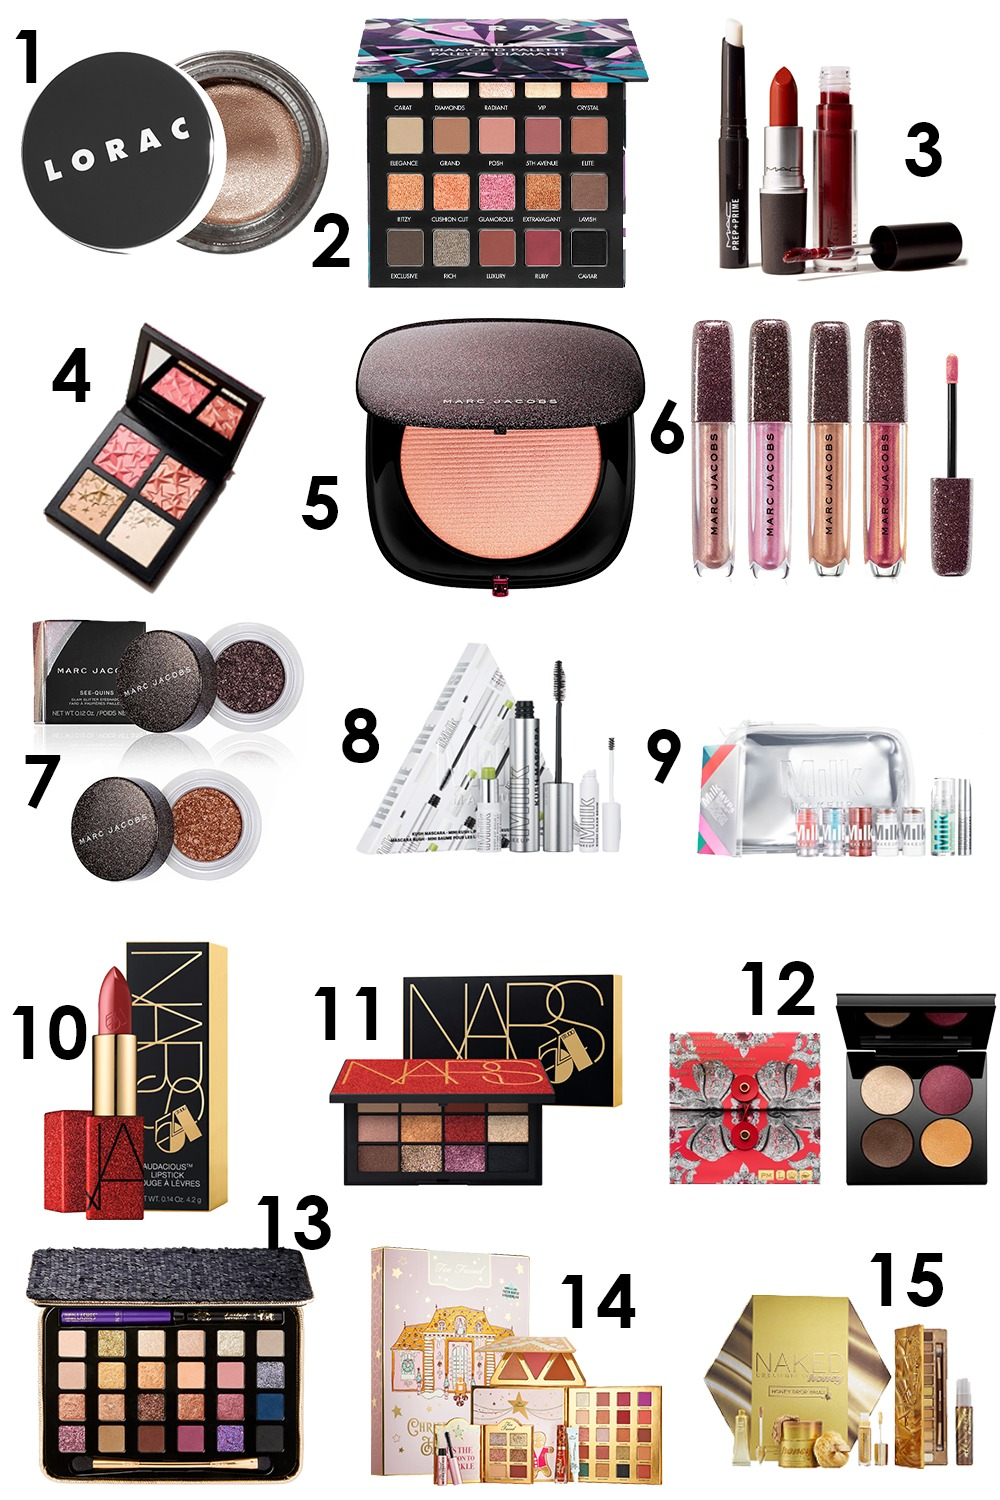 Best 2019 Holiday Makeup Releases I DreaminLace.com